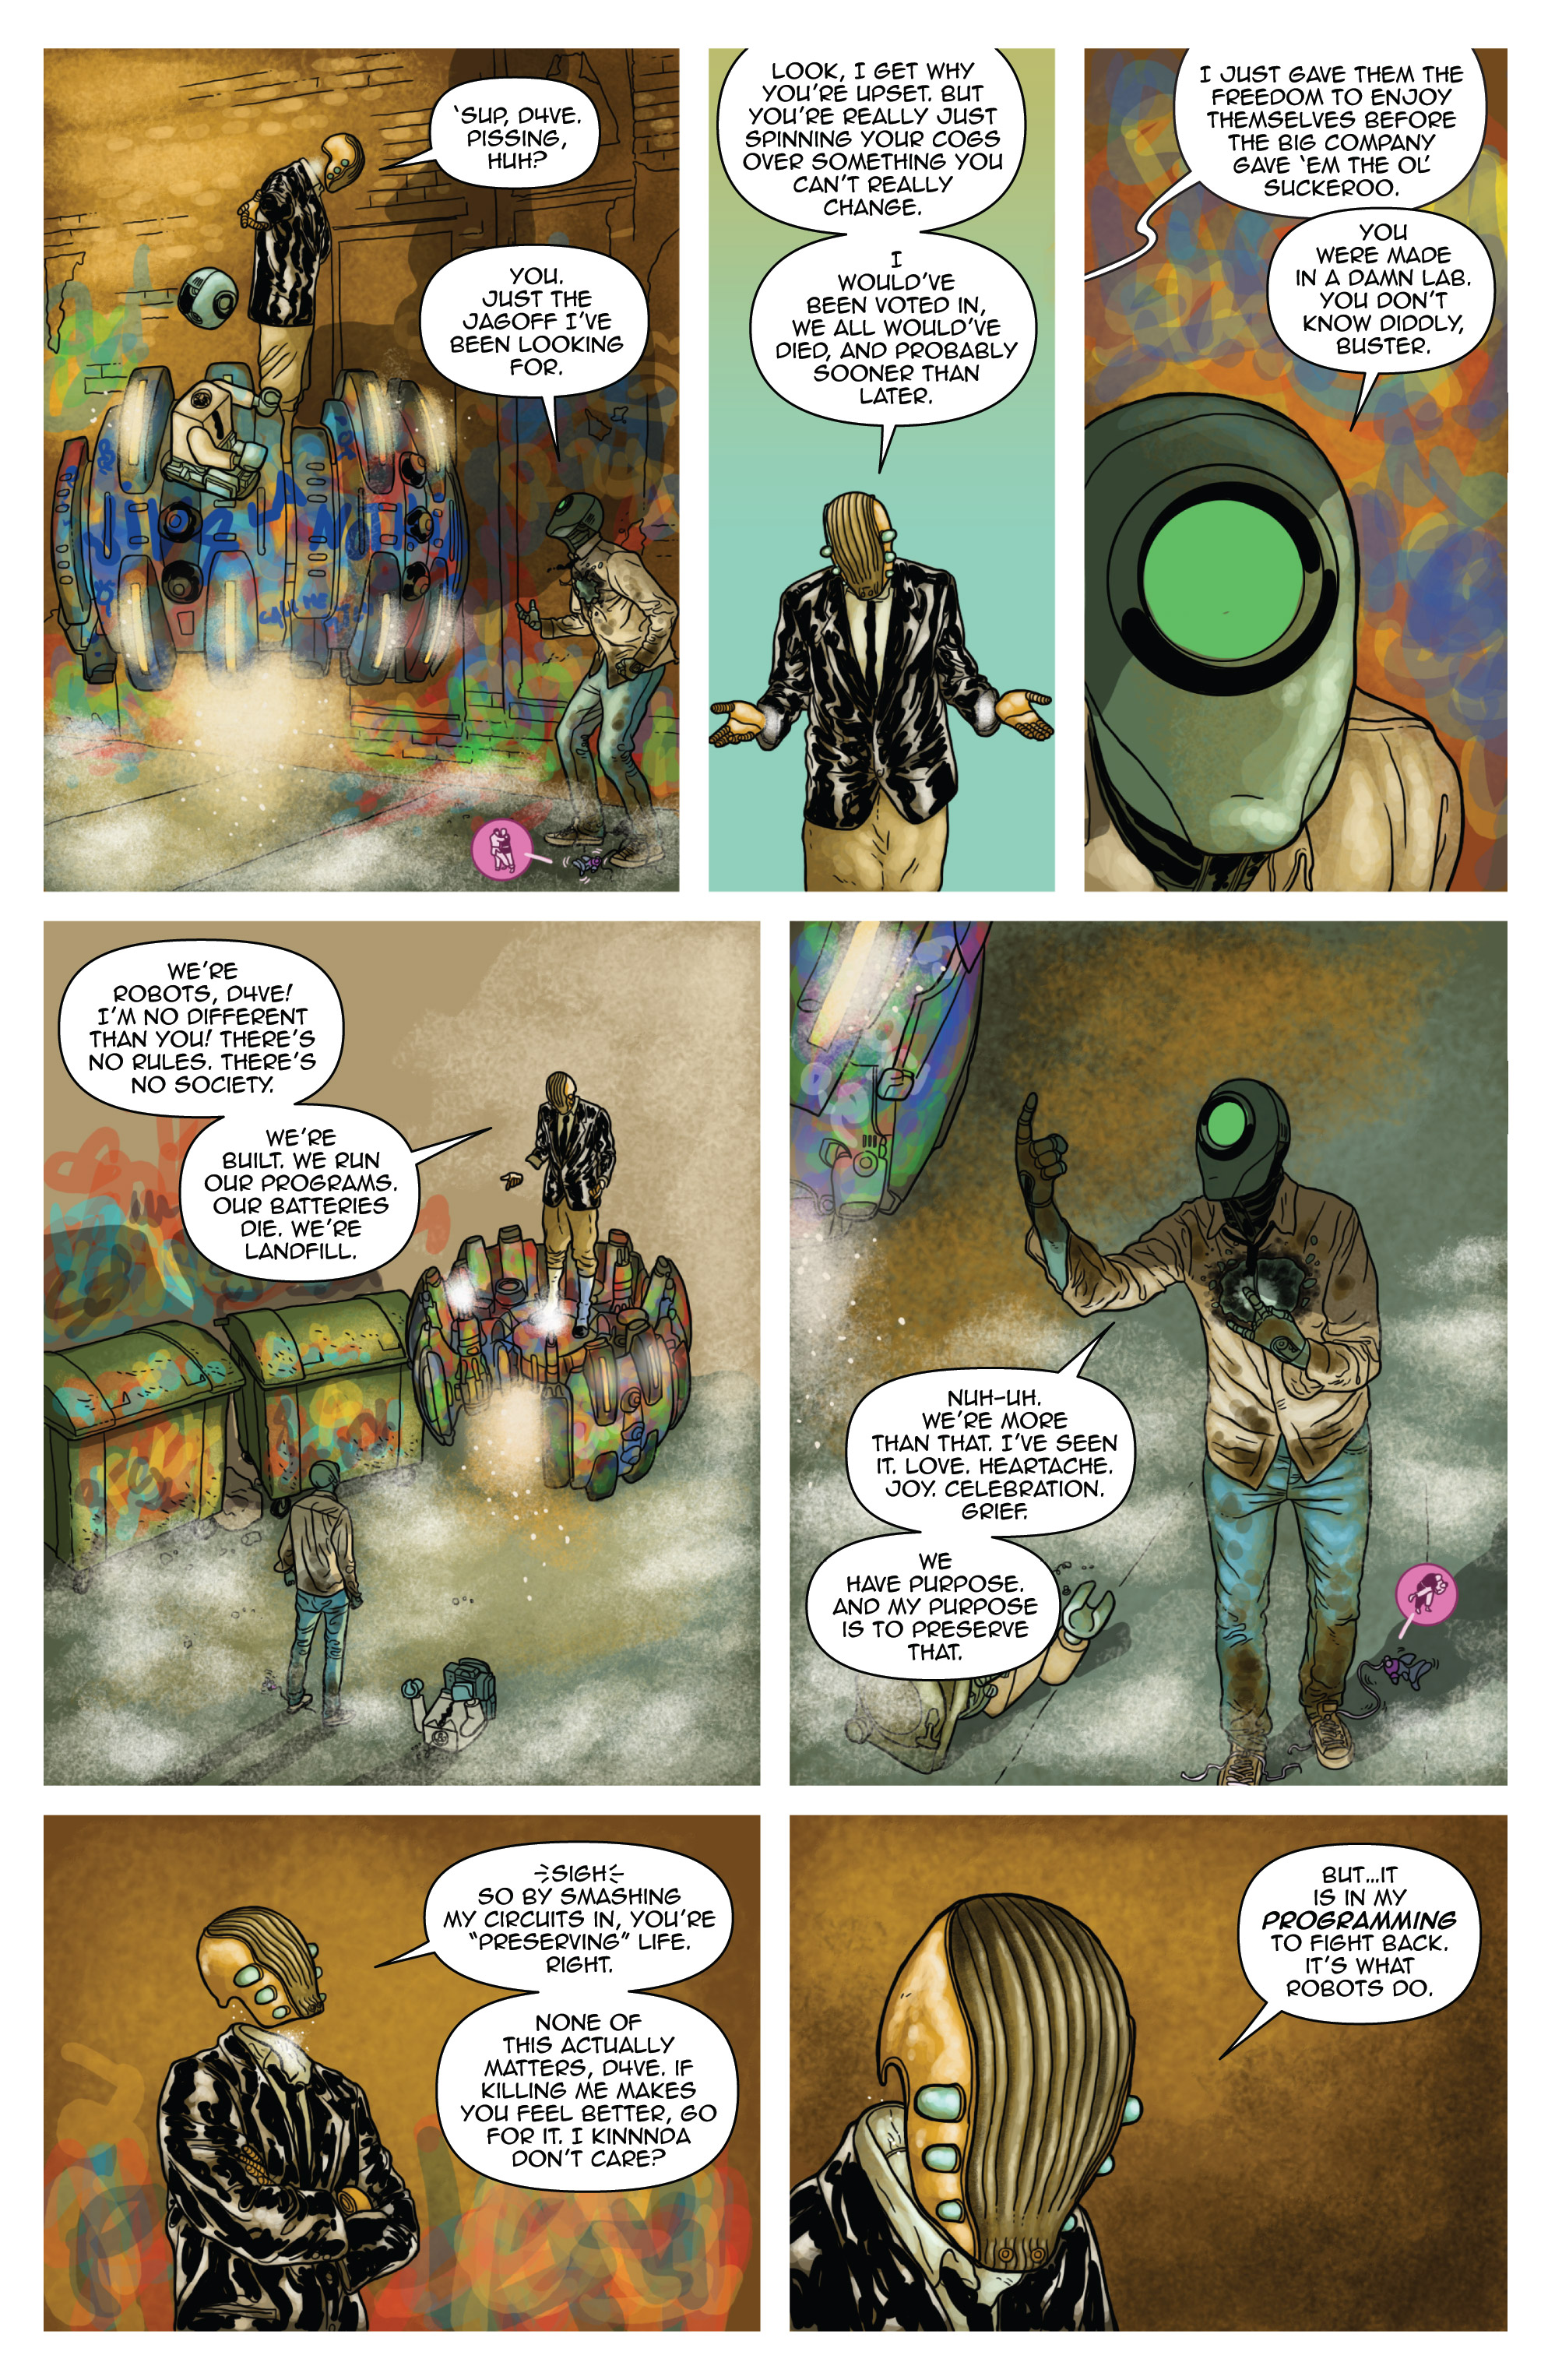 Read online D4VEocracy comic -  Issue #4 - 12